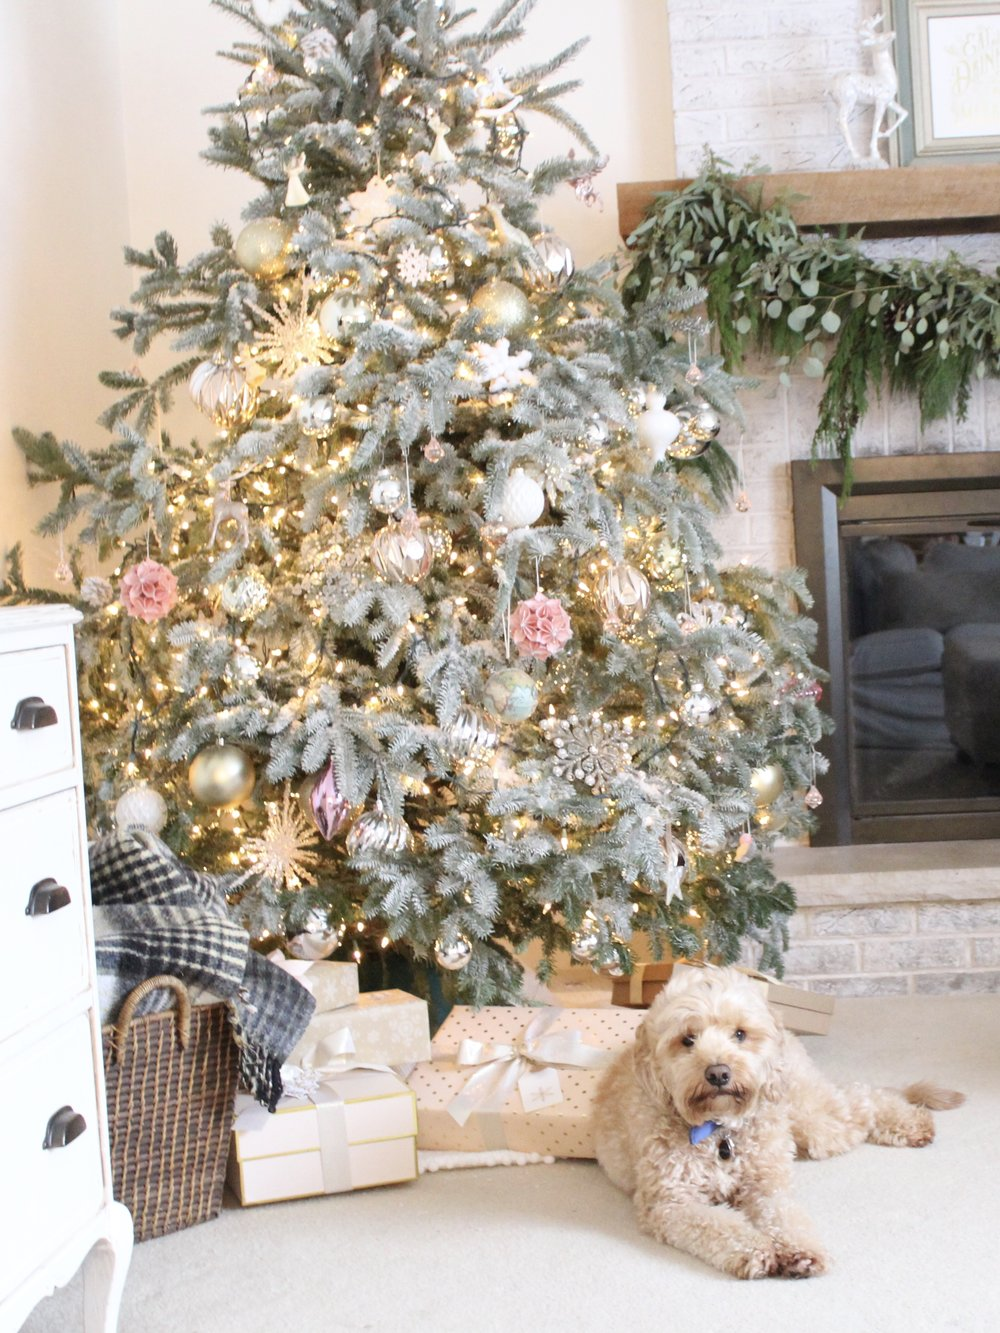 Flocked Christmas Tree & Blush Ornaments, Design Blogger House Tours, Laura Design Co.